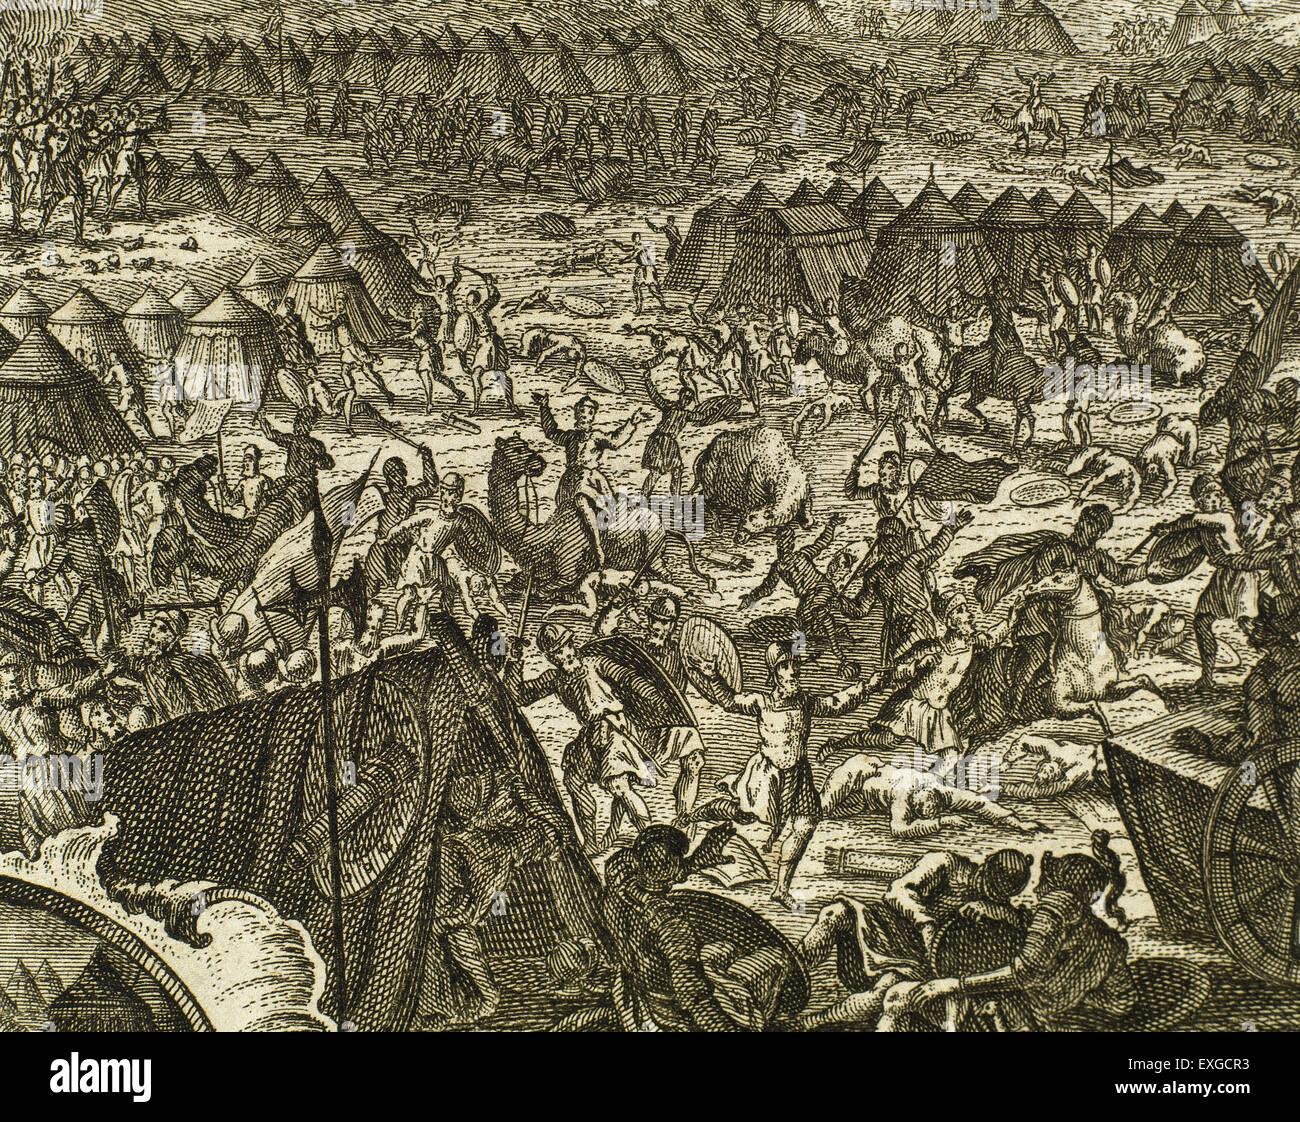 Battle in which Gideon, by God's command, have to liberate the people of Israel from the oppression of Midianites. - Stock Image